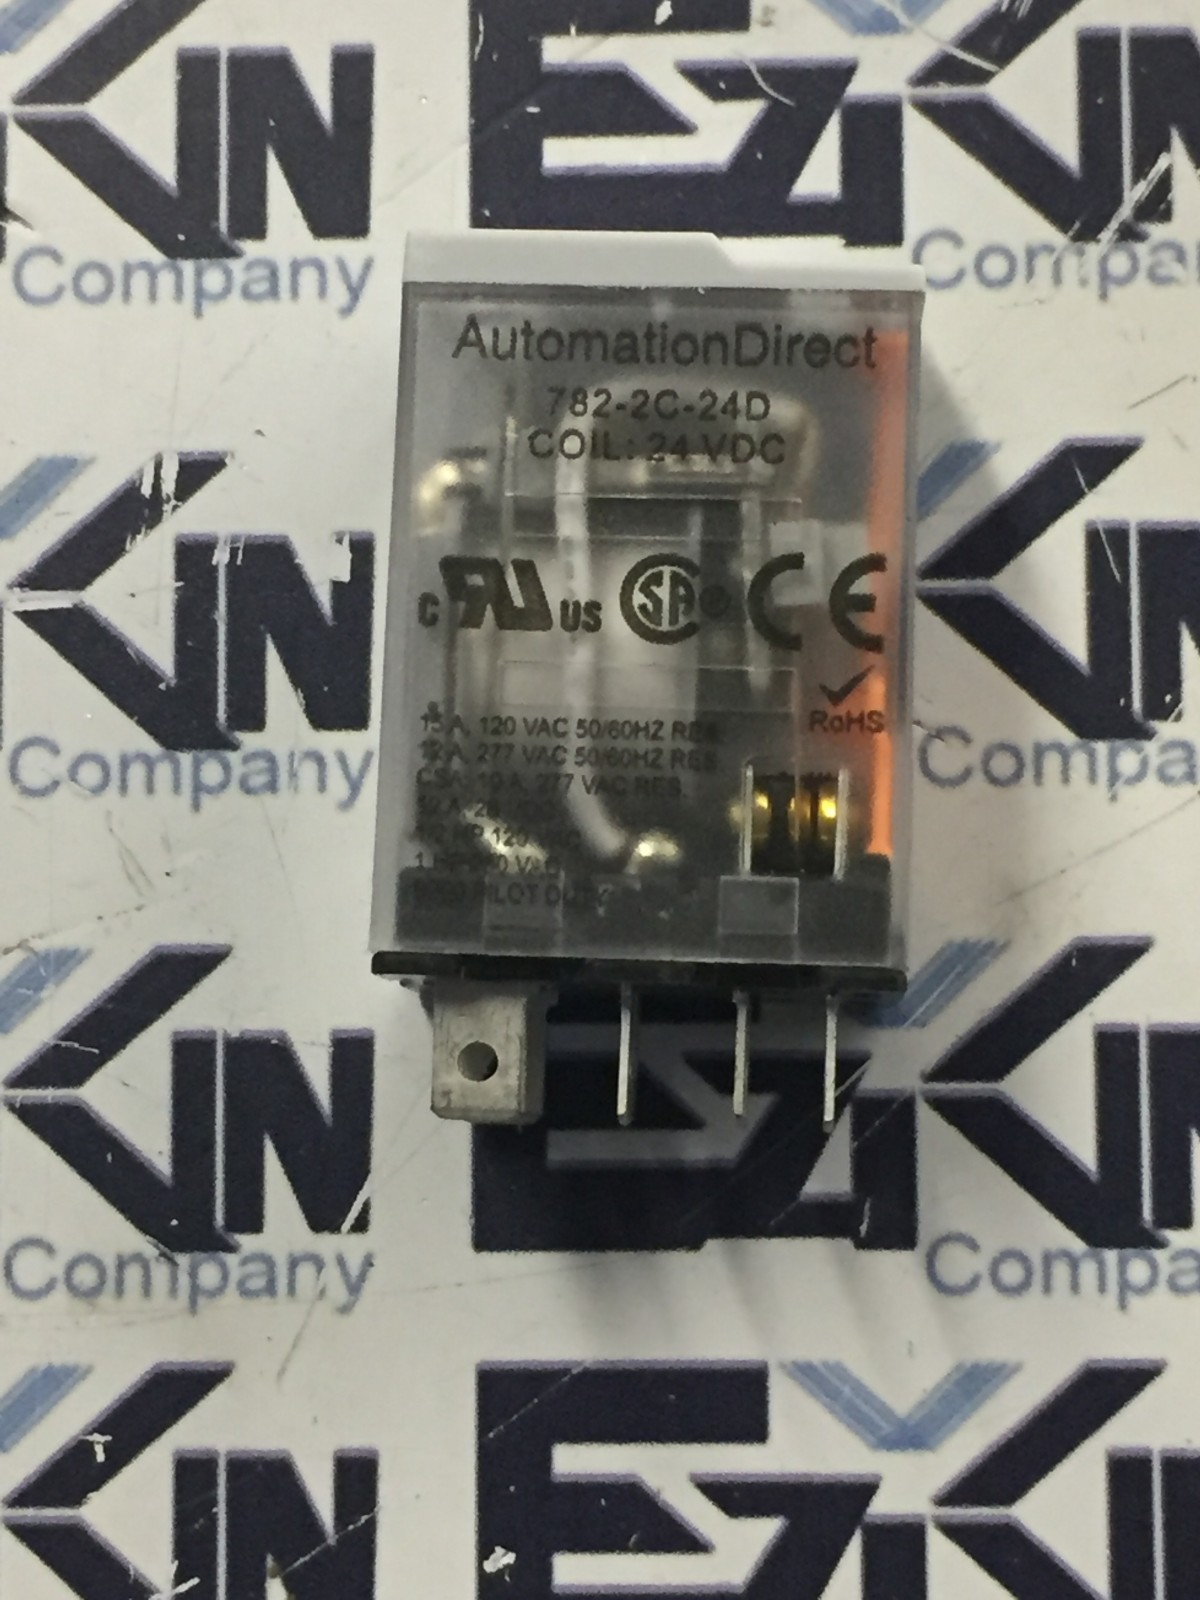 Automation Direct 782-2C-24D RELAY